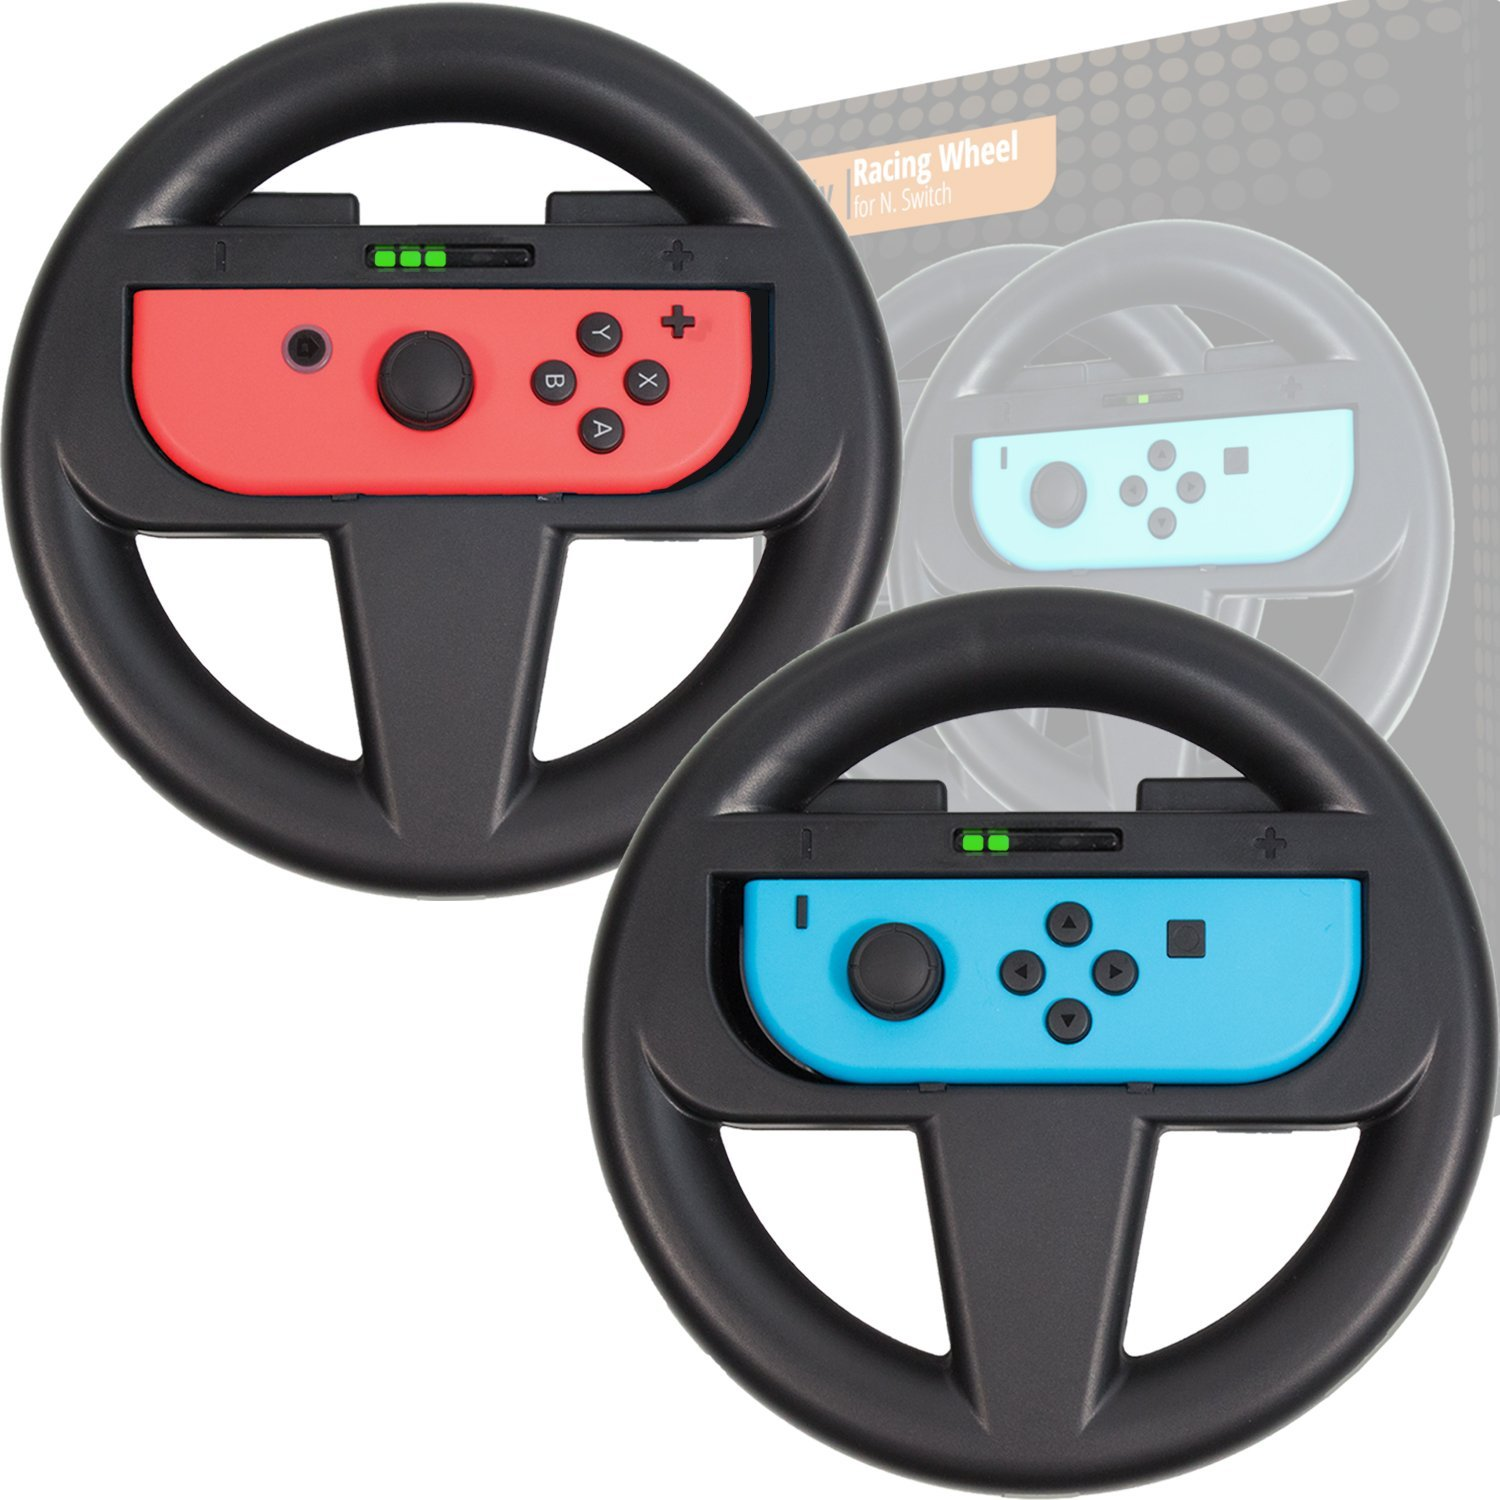 Orzly Racing Wheel for Nintendo Switch